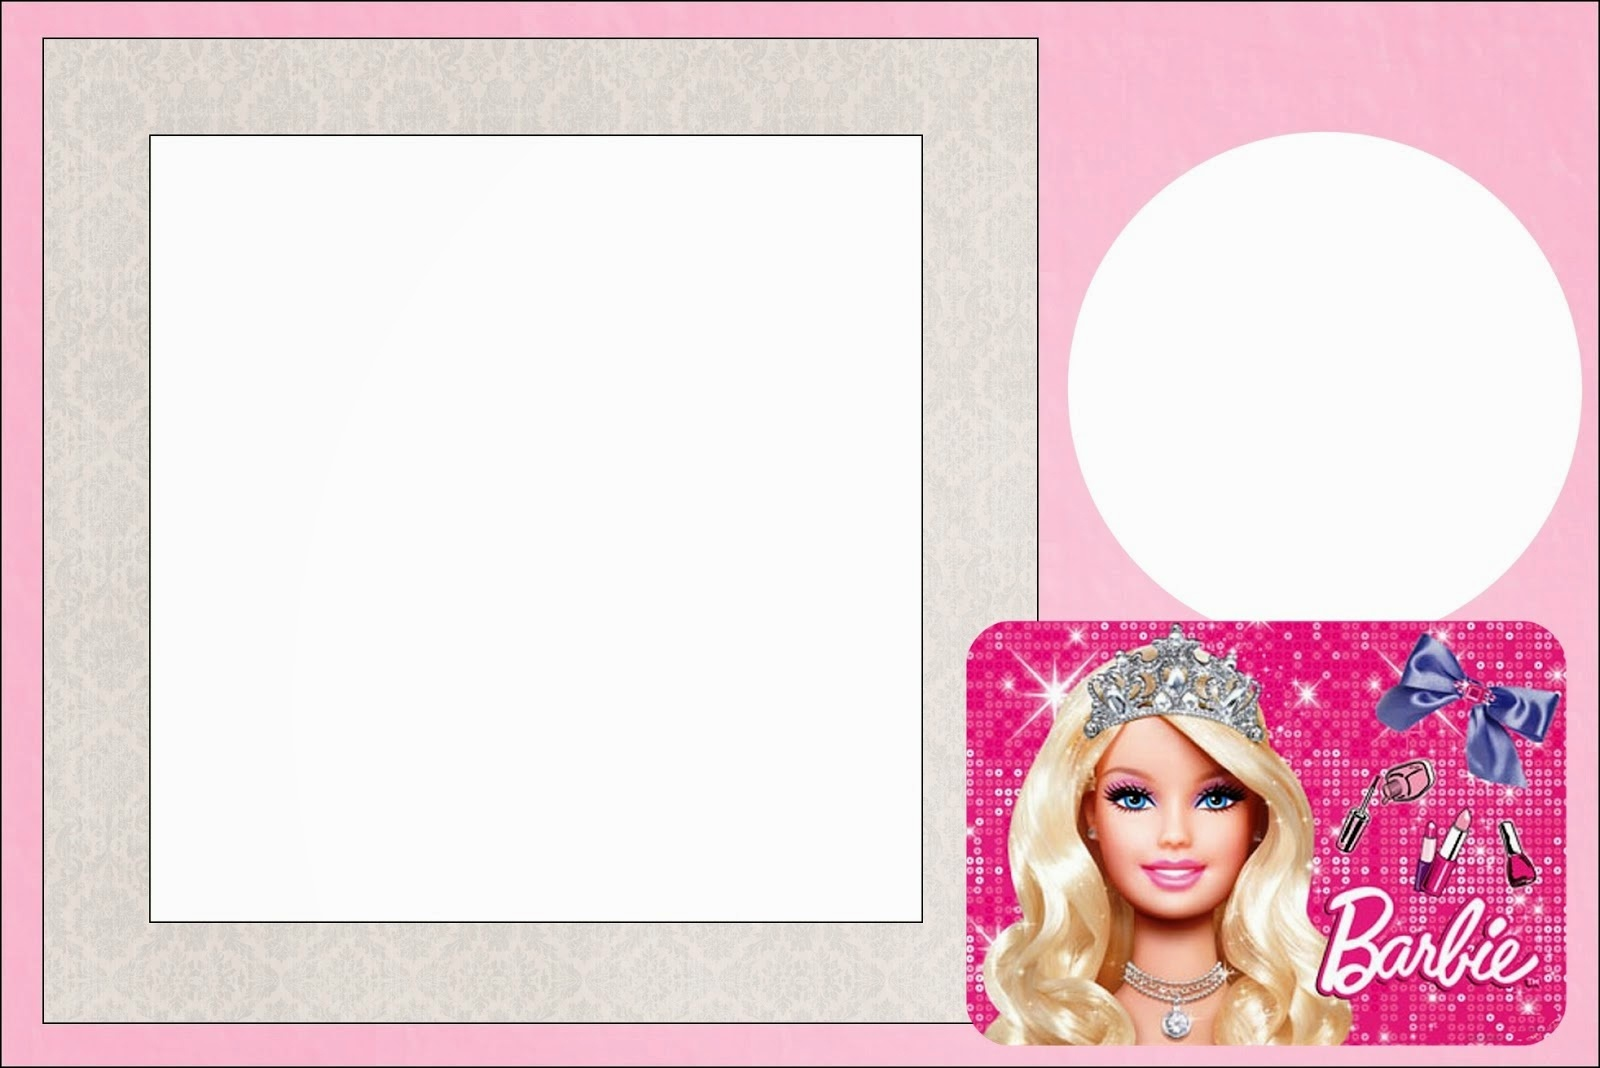 Barbie Life Style: Free Printable Invitations. - Oh My Fiesta! In - Free Printable Barbie Birthday Party Invitations